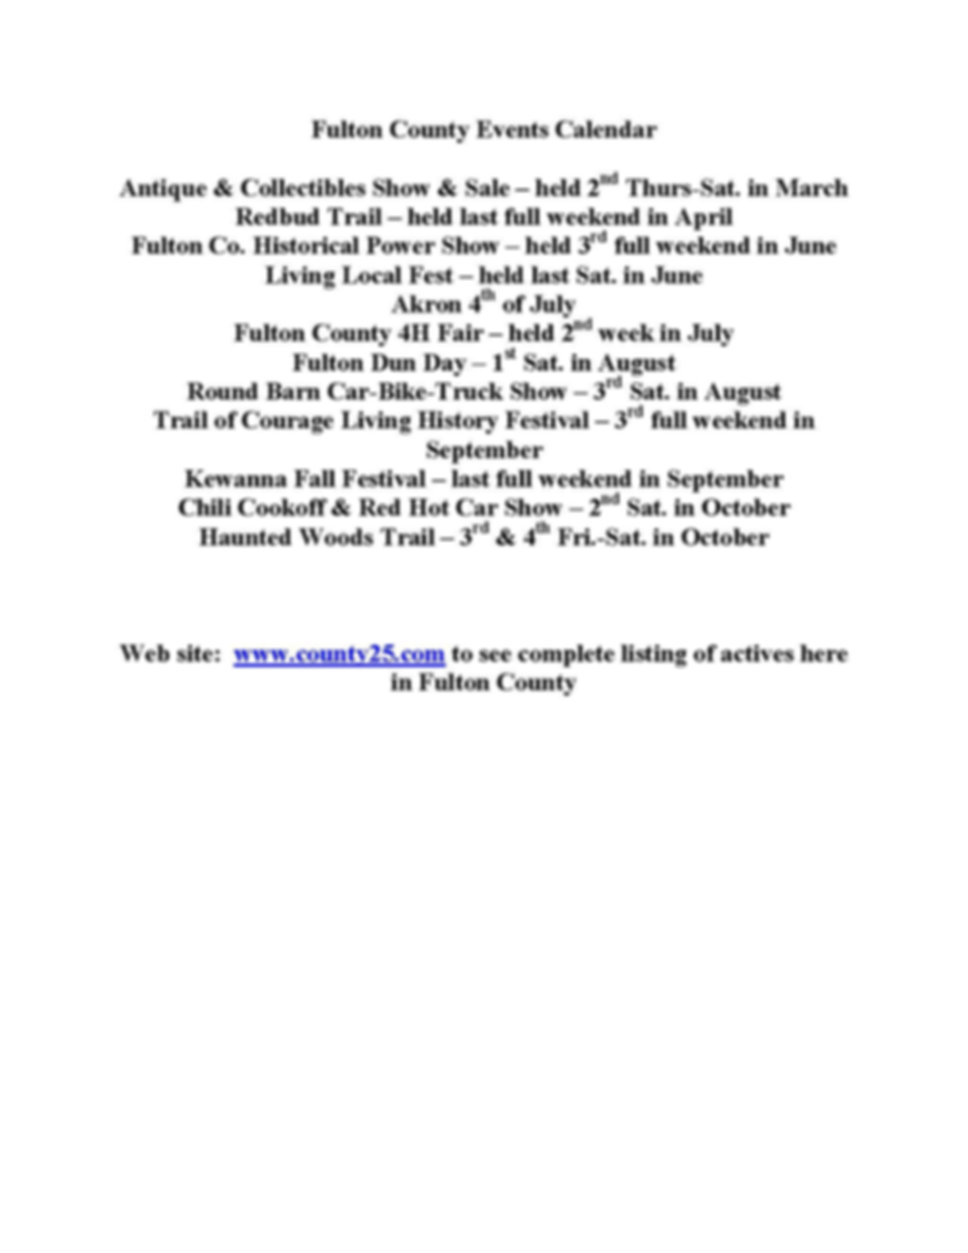 Fulton Co. 2019 Events_Page_2.jpg